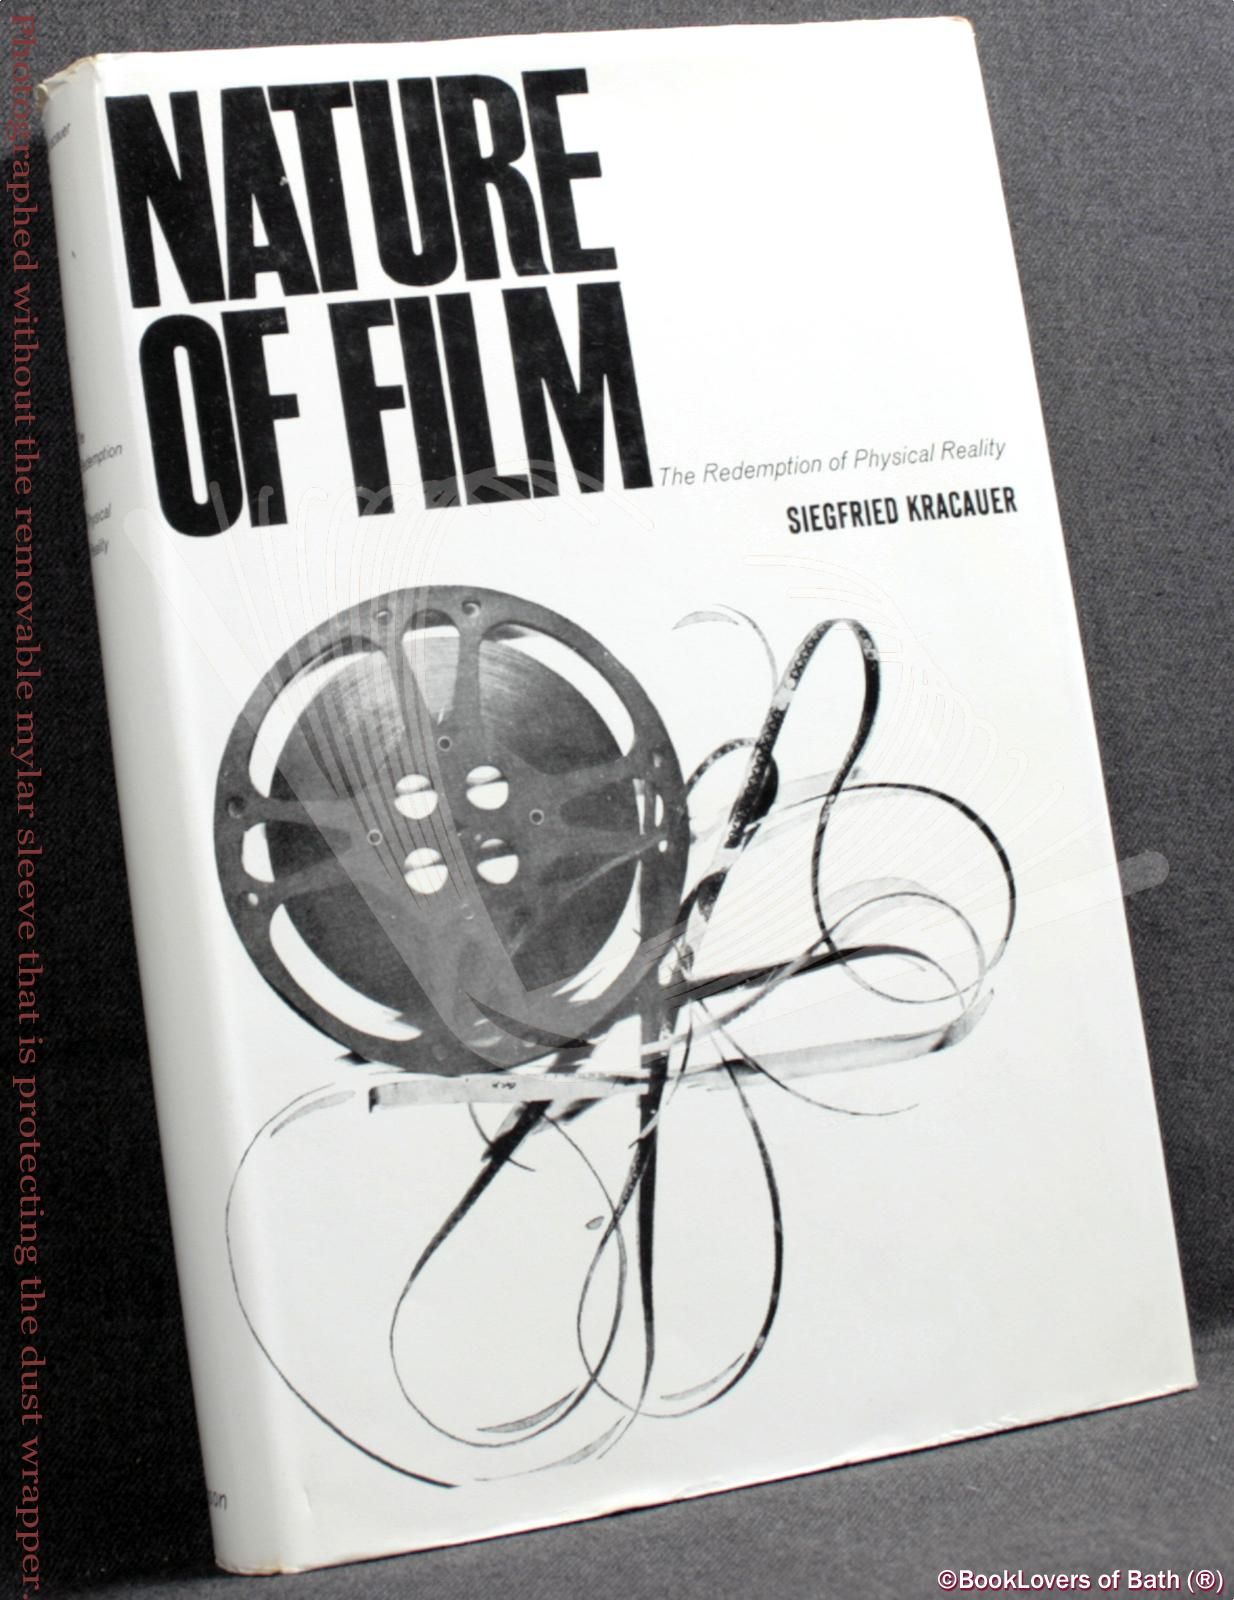 Nature of Film: The Redemption of Physical Reality - Siegfried Kracauer